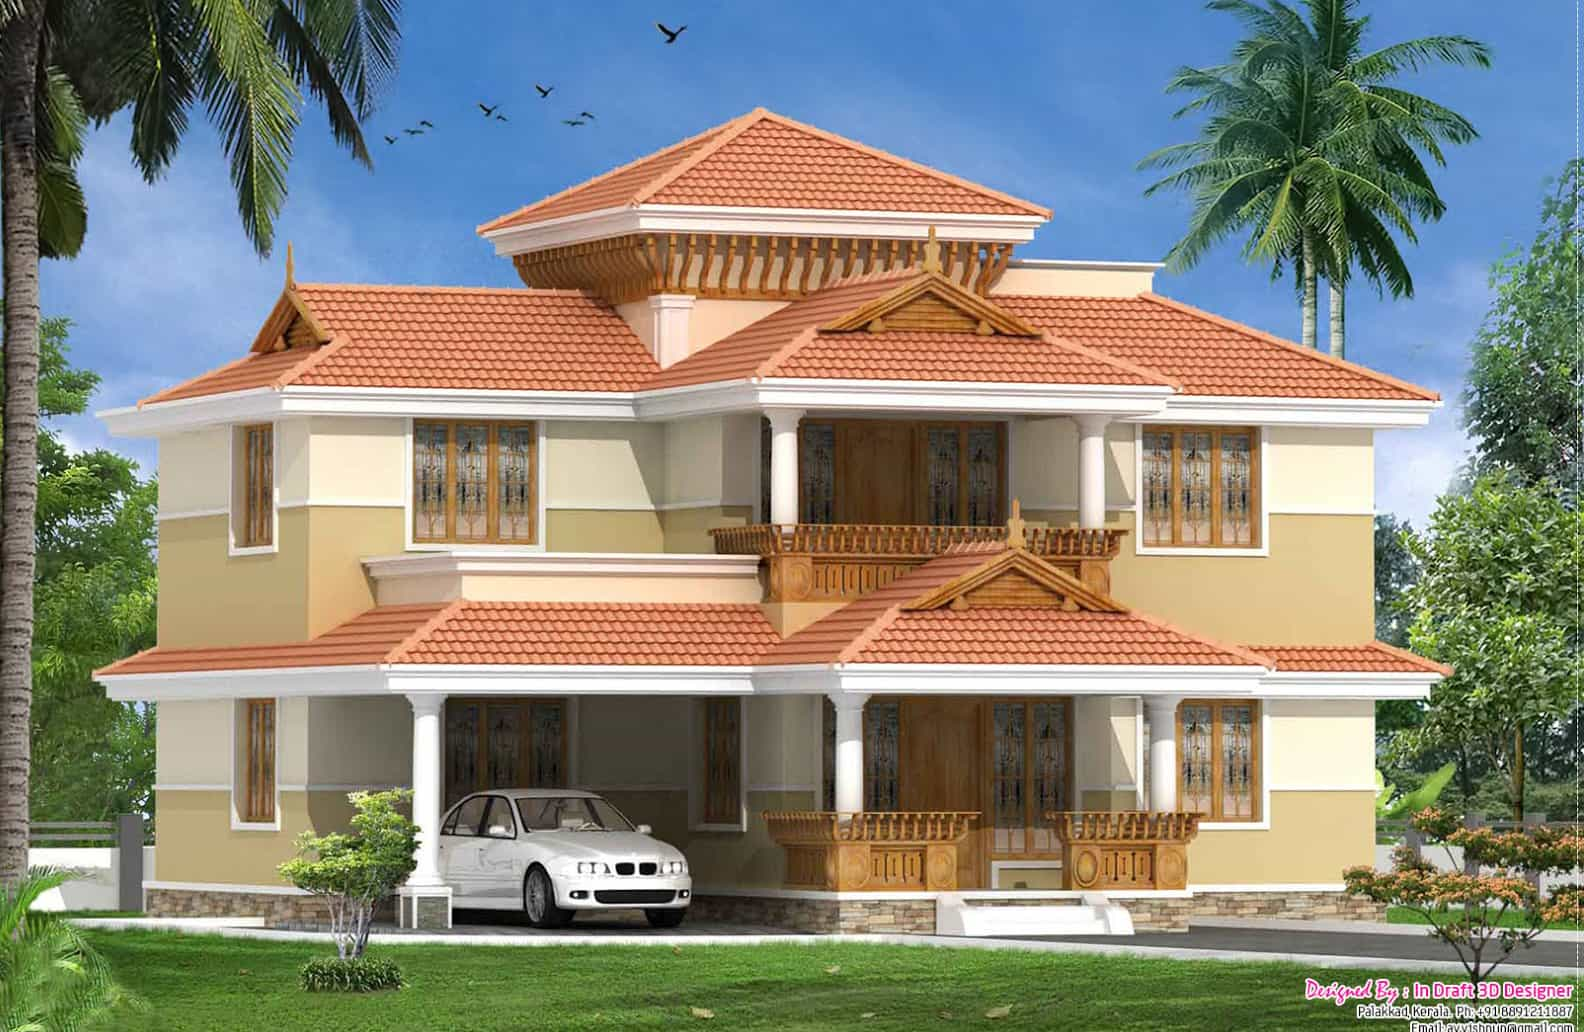 Traditional Malayalee 3bhk Home Design At 2060